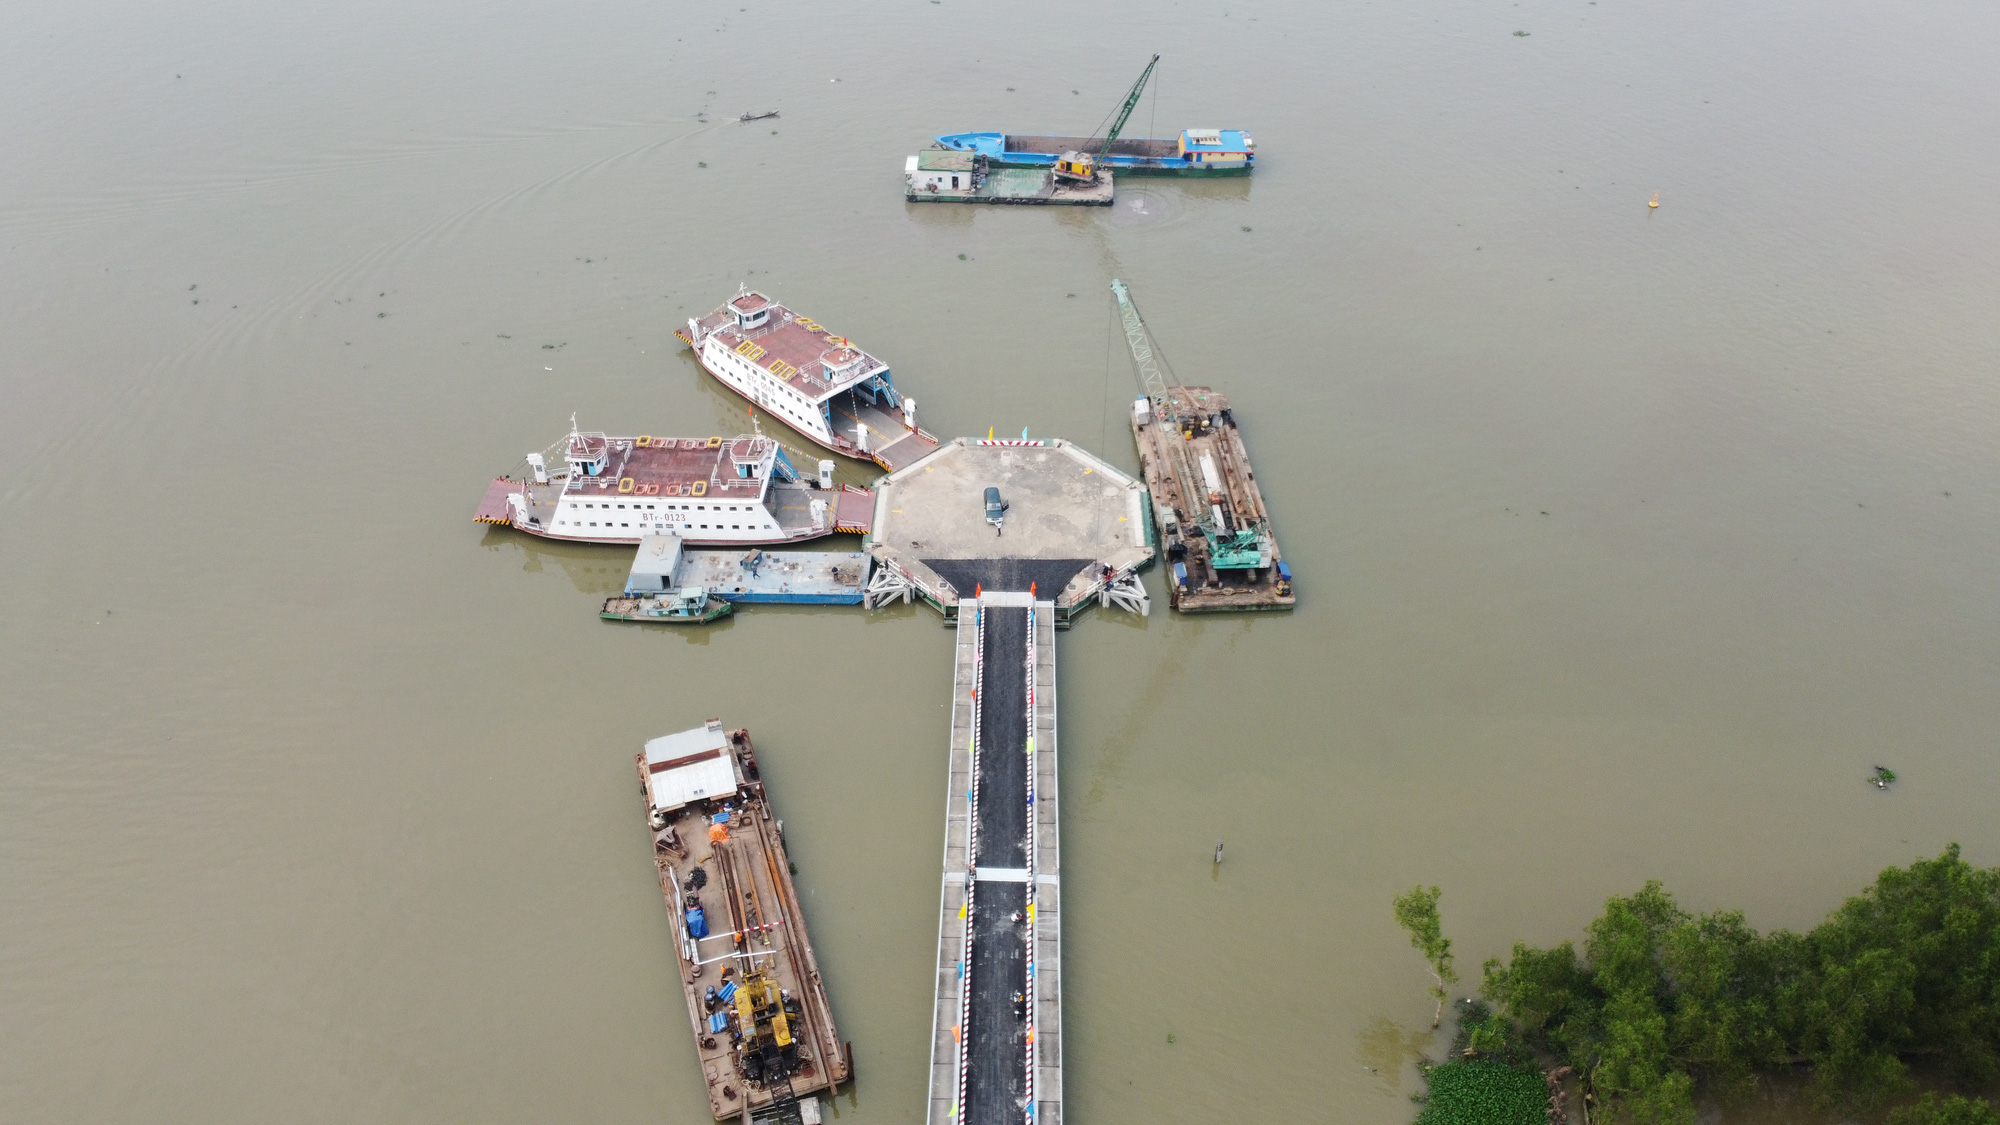 A bird's-eye view of Rach Mieu ferry, which connects Tien Giang and Ben Tre Provinces in Vietnam's Mekong Delta. Photo: Mau Truong / Tuoi Tre